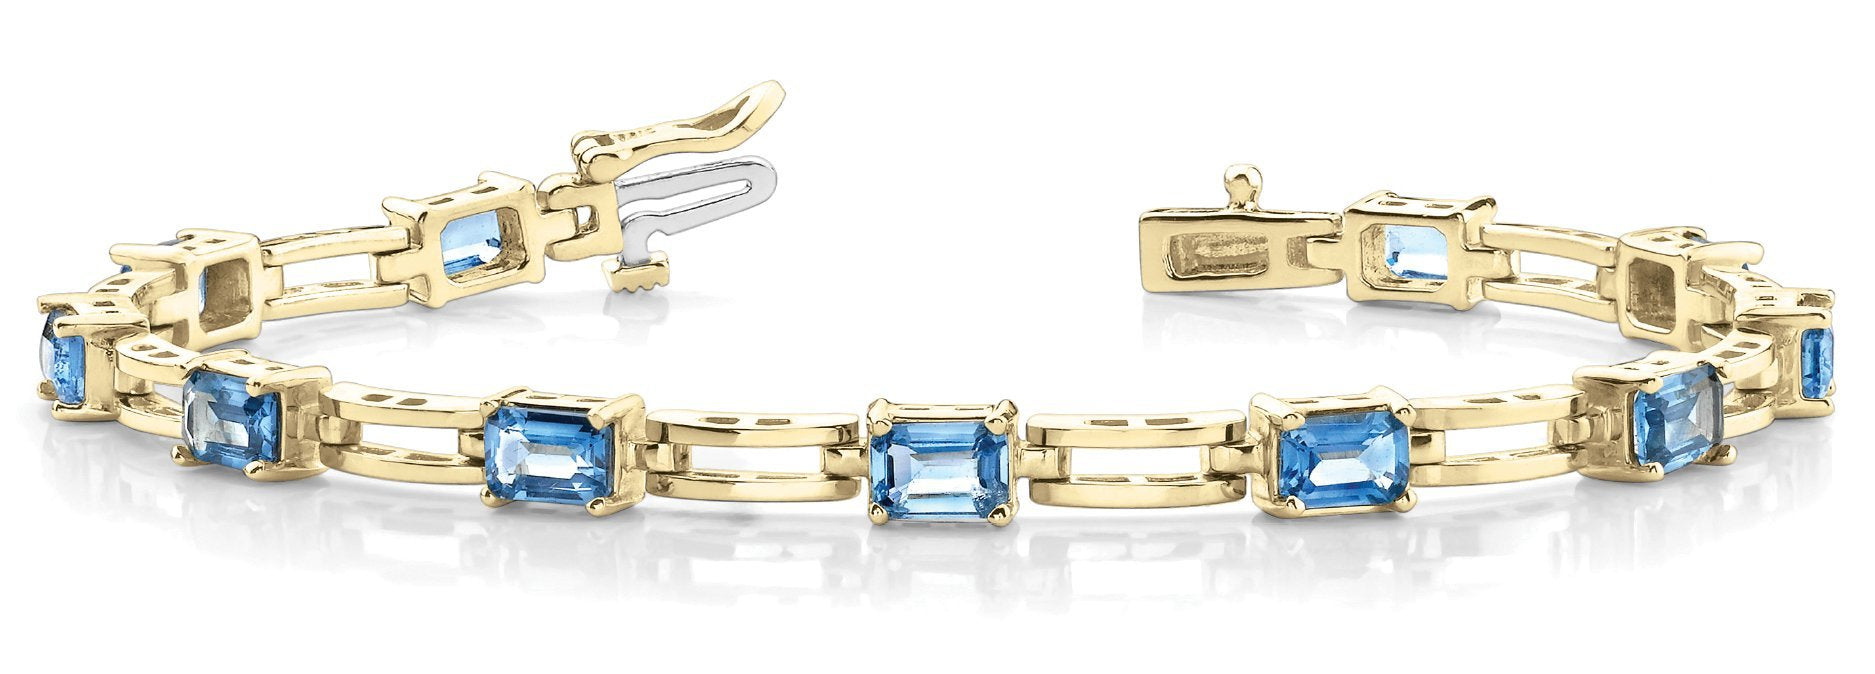 Blue Topaz 5.95ct Bracelet - 14kt Yellow Gold